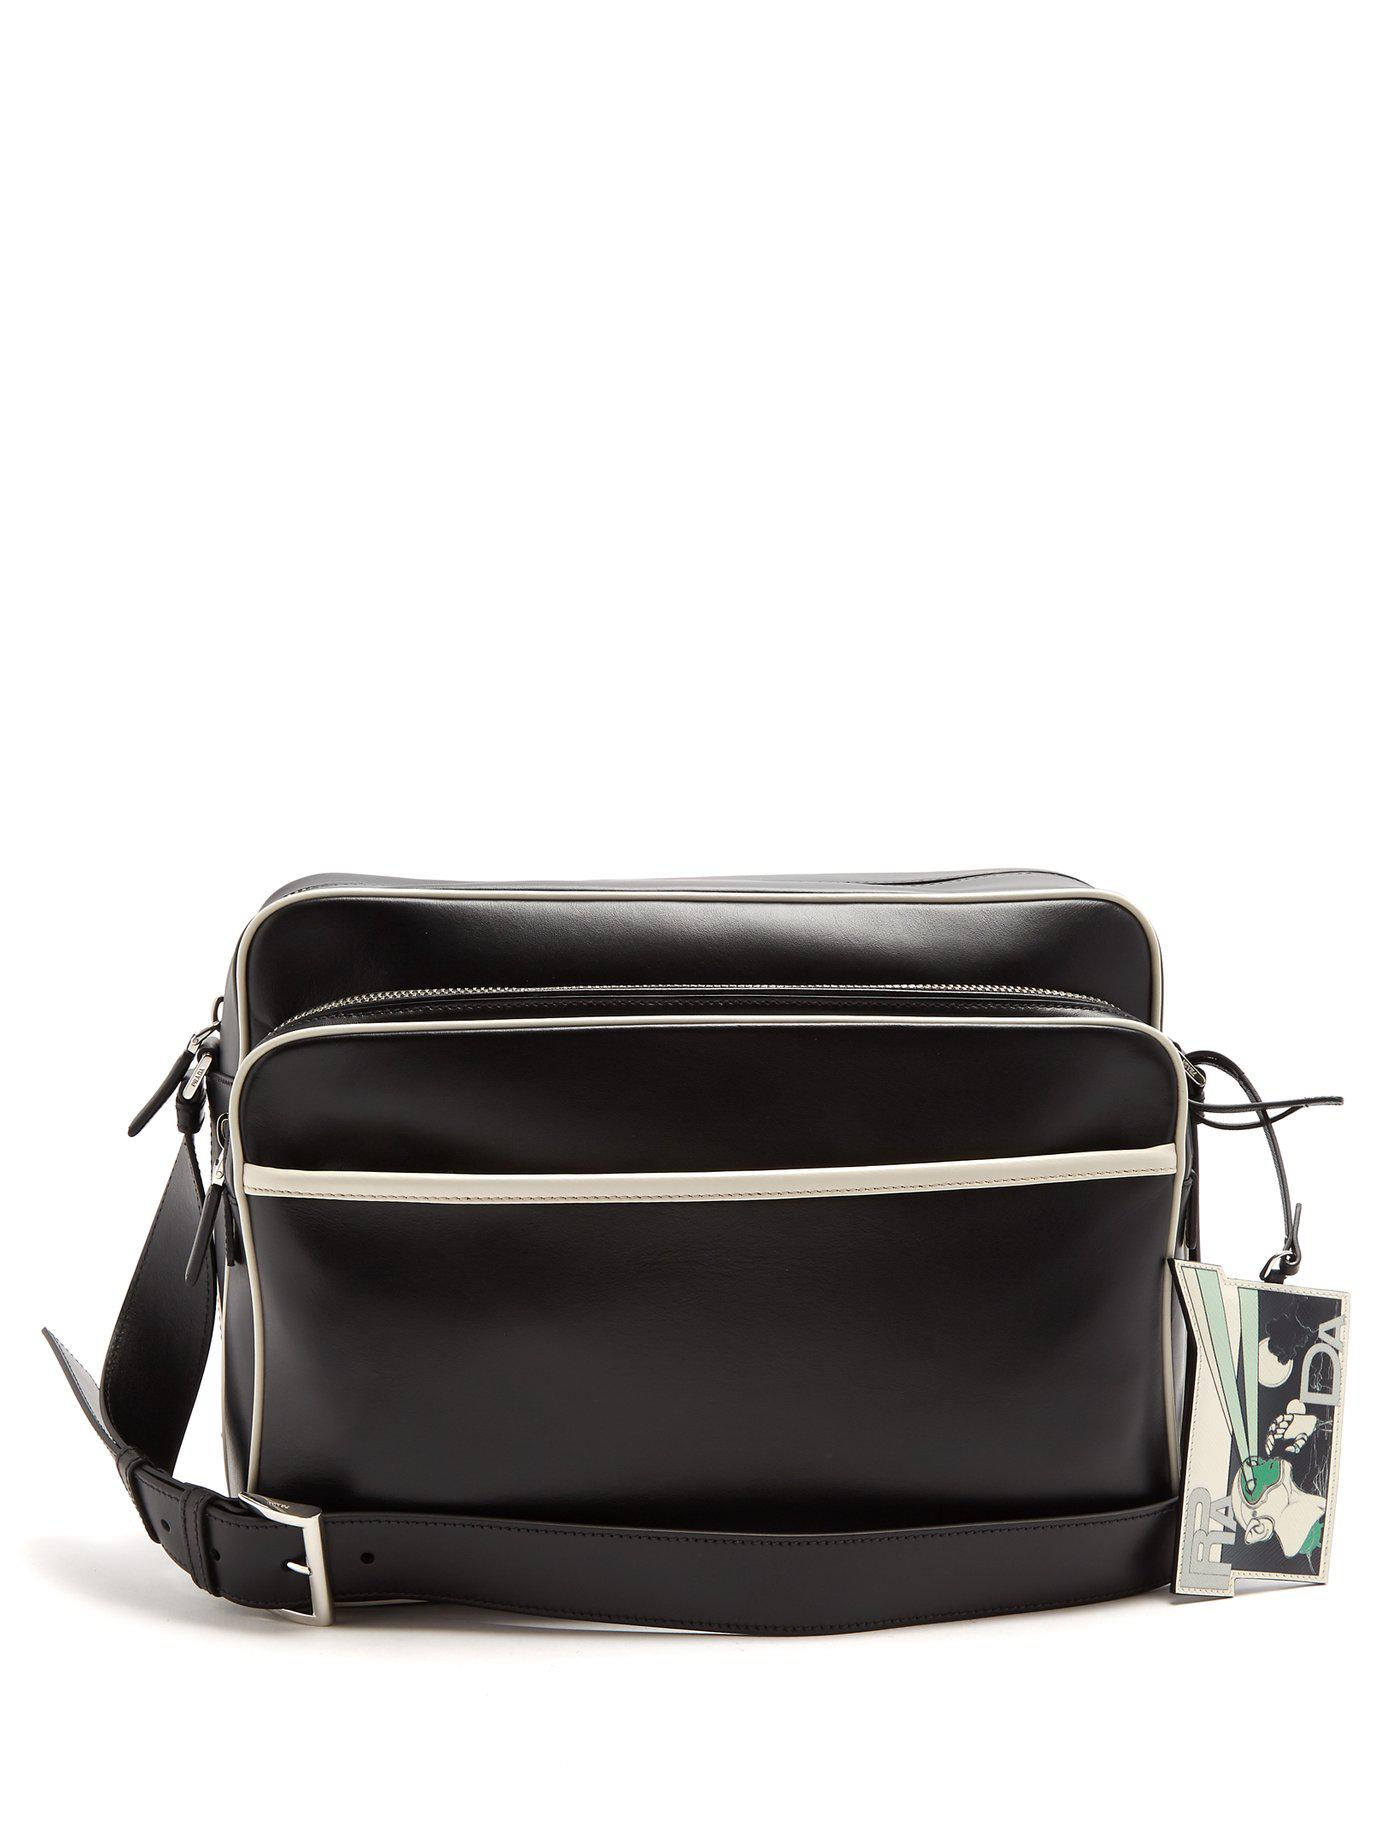 13dcdfb1b8c9a ... new zealand prada. mens black contrast piping leather messenger bag  85076 6b6d8